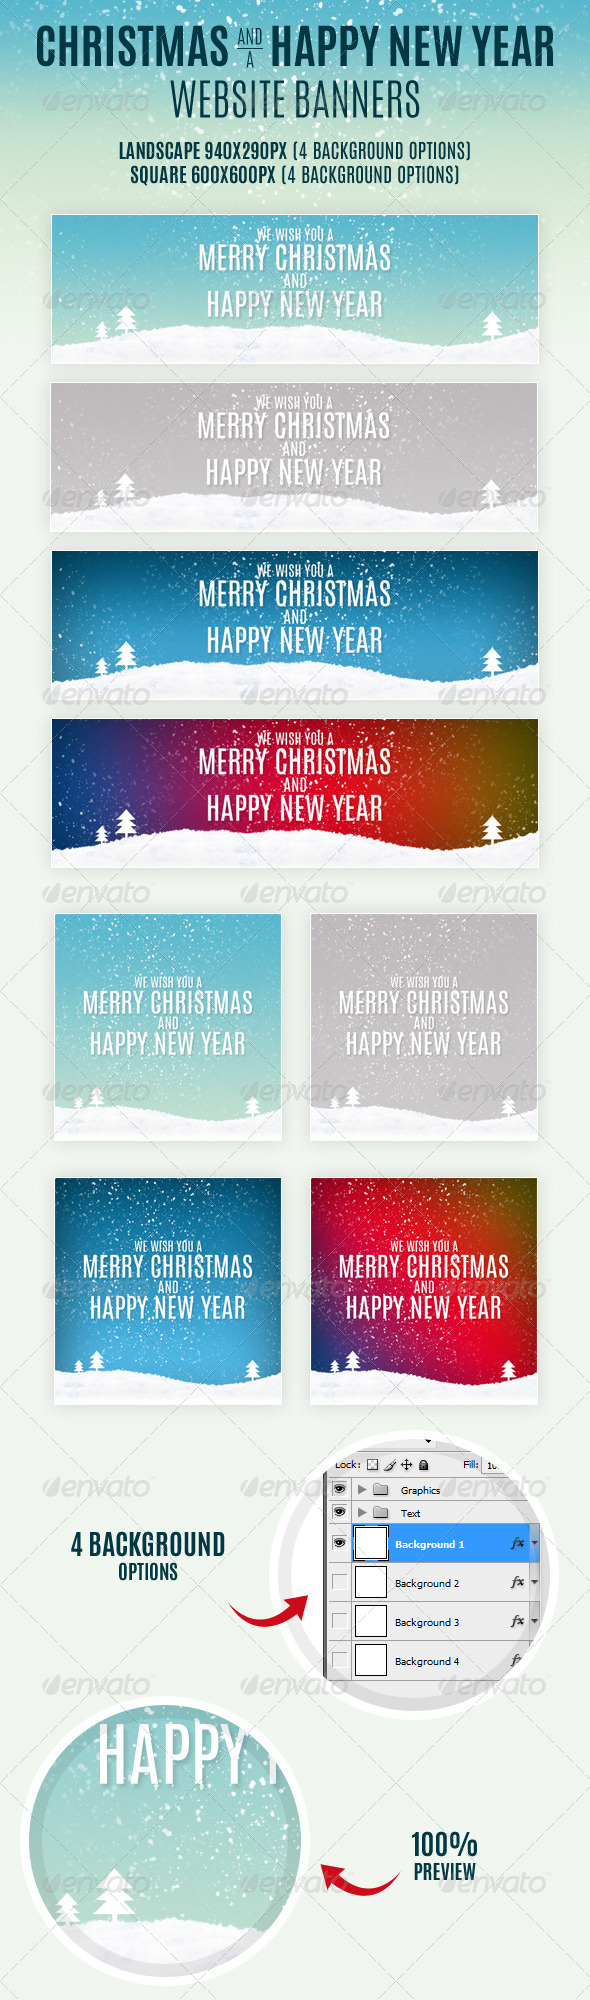 GraphicRiver Christmas And Happy New Year Website Banners 6449038